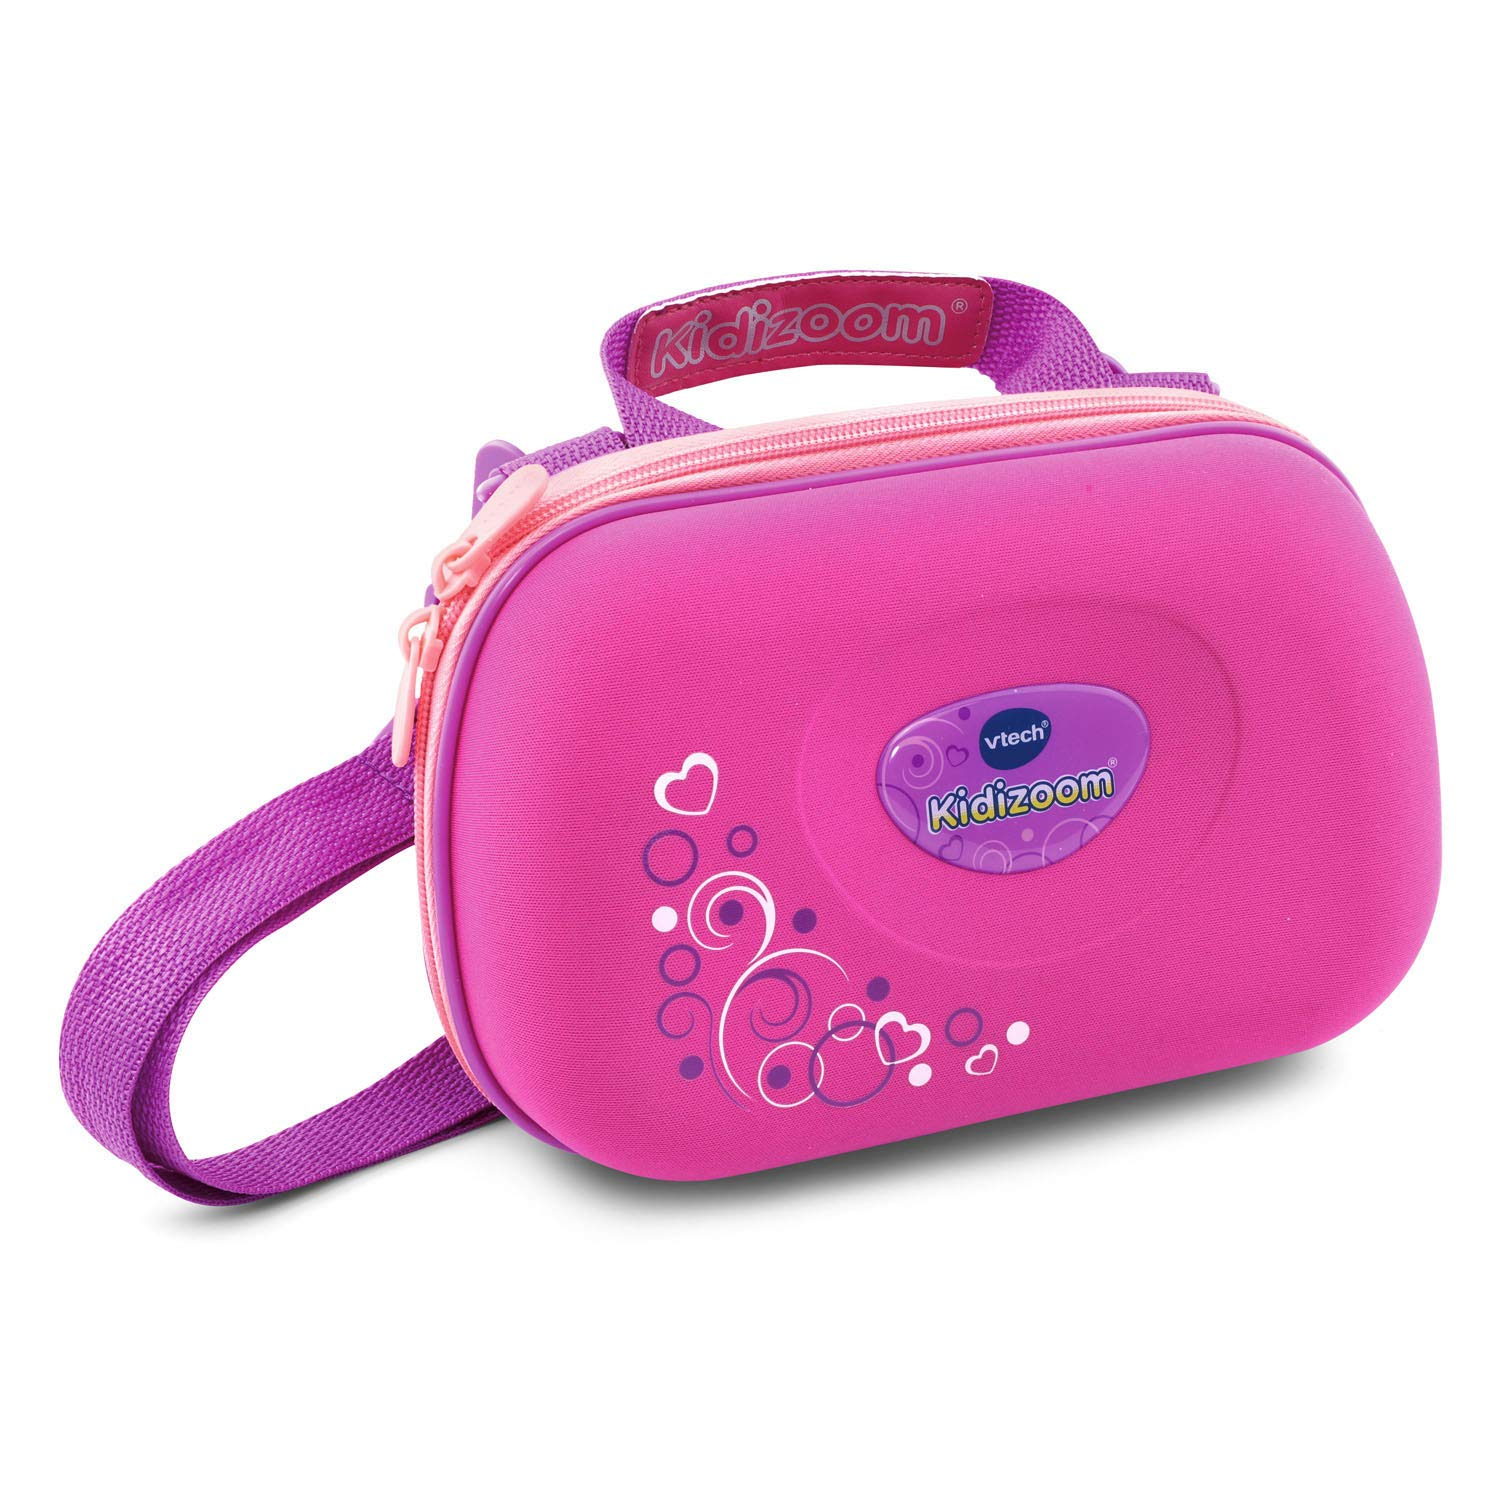 VTech Kidizoom Carrying Case Amazon Exclusive, Pink 80-201860